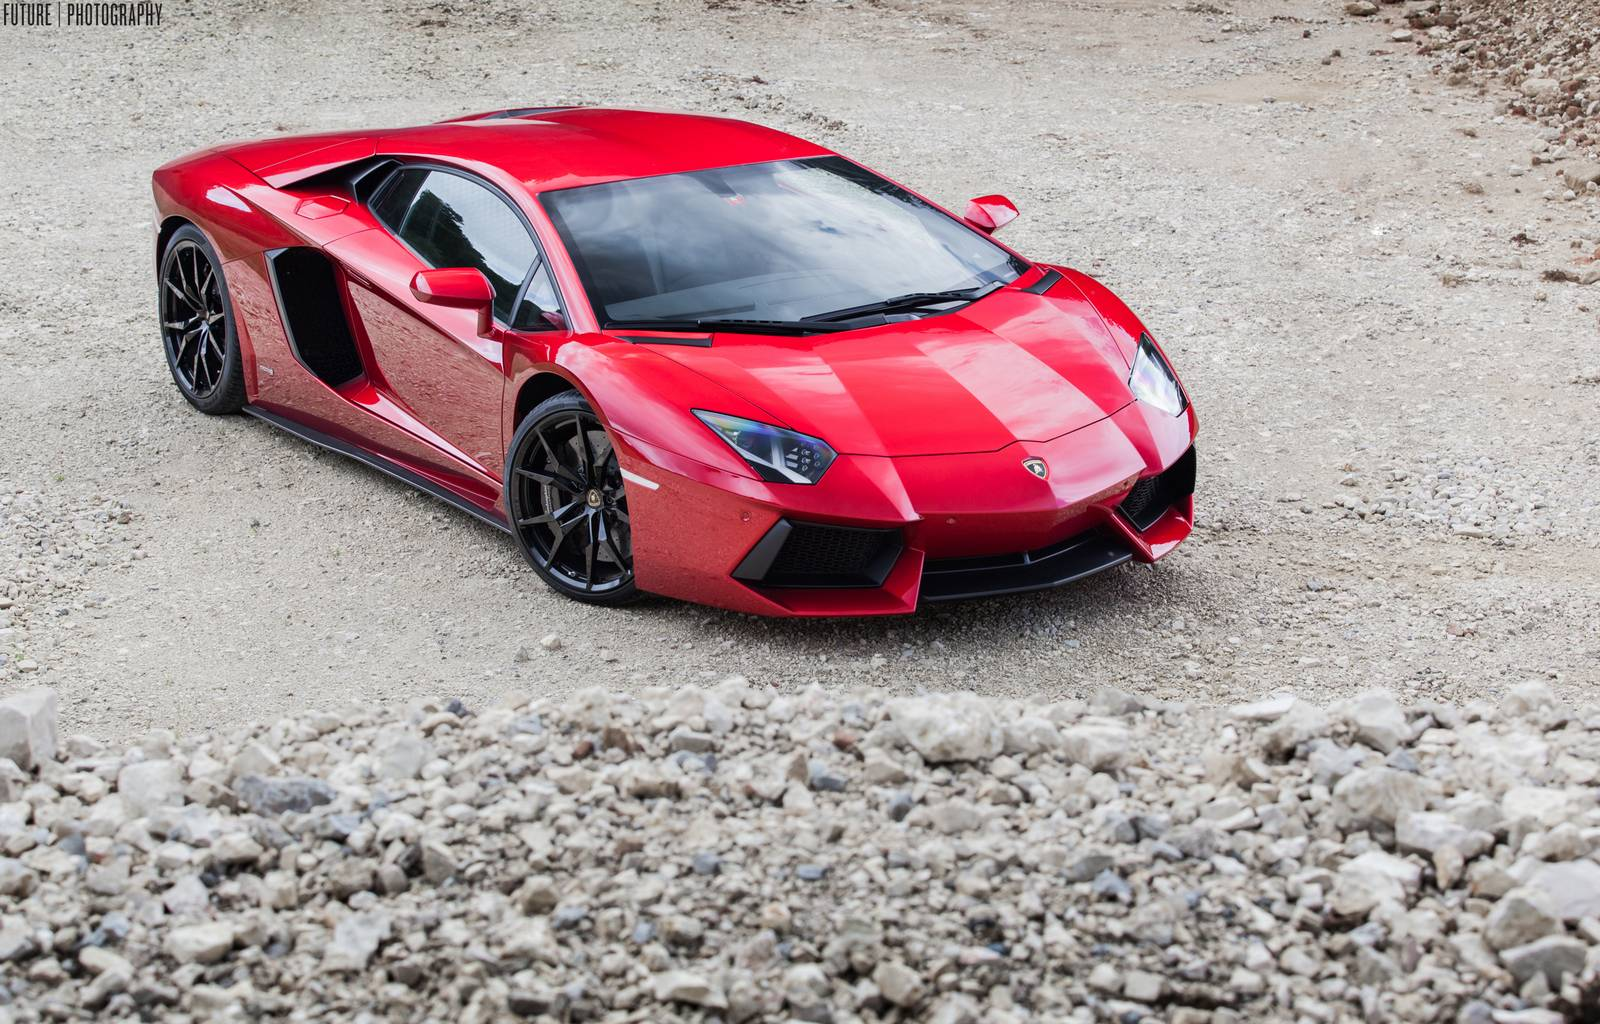 Gallery Red Lamborghini Aventador With Black Wheels Is Gorgeous